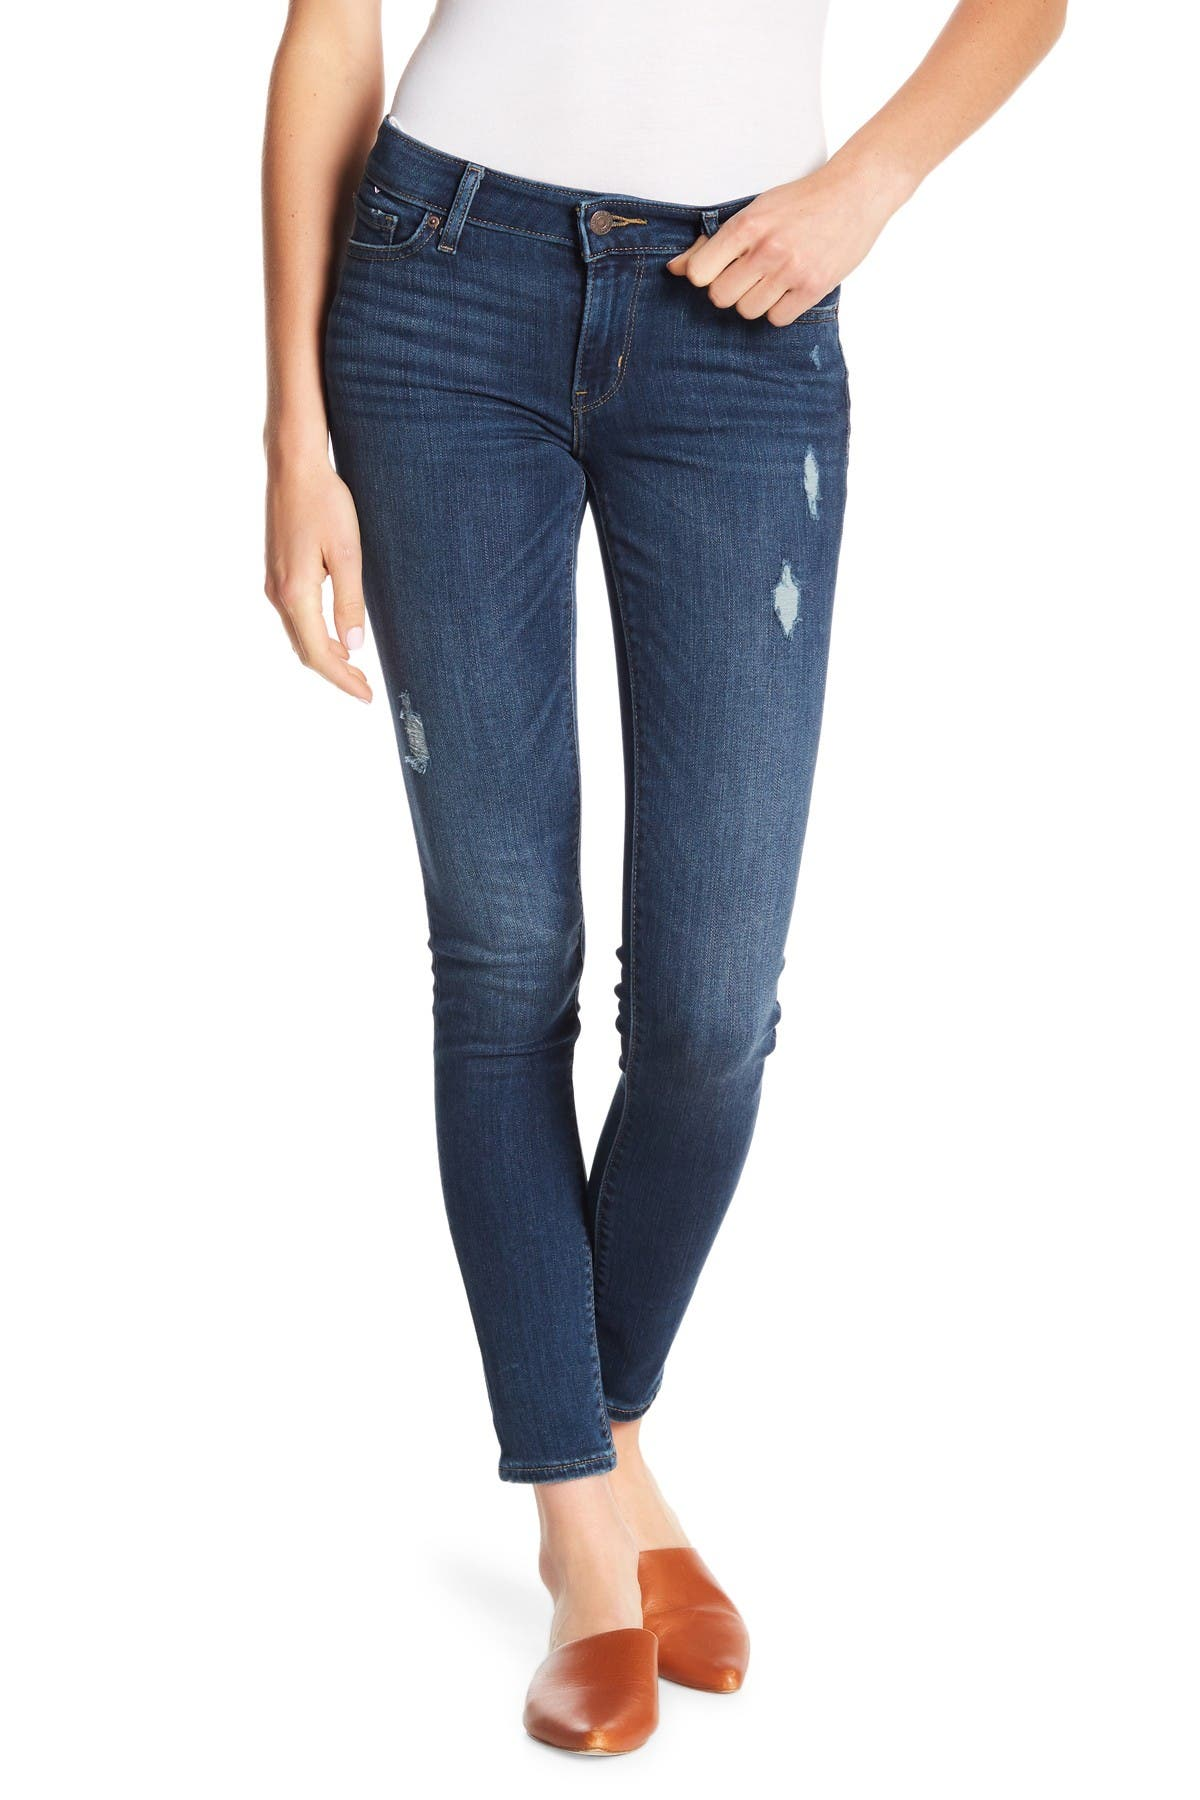 """Image of Levi's 711 Distressed Skinny Jeans - 30-32"""" Inseam"""